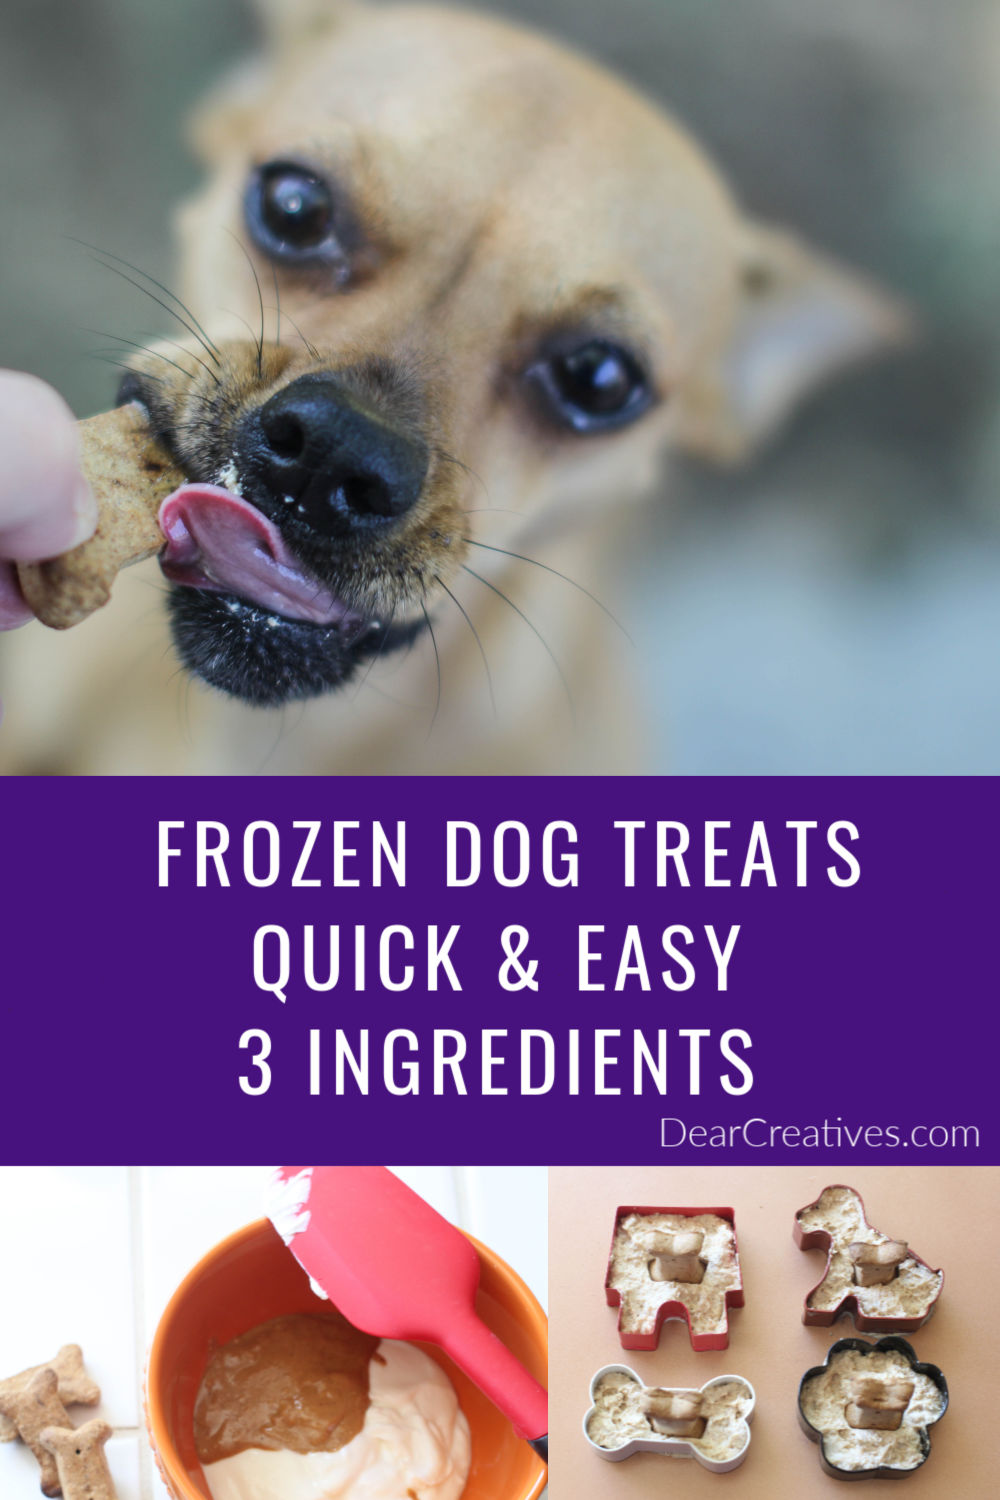 Frozen Dog Treats – Quick And Easy To Make!